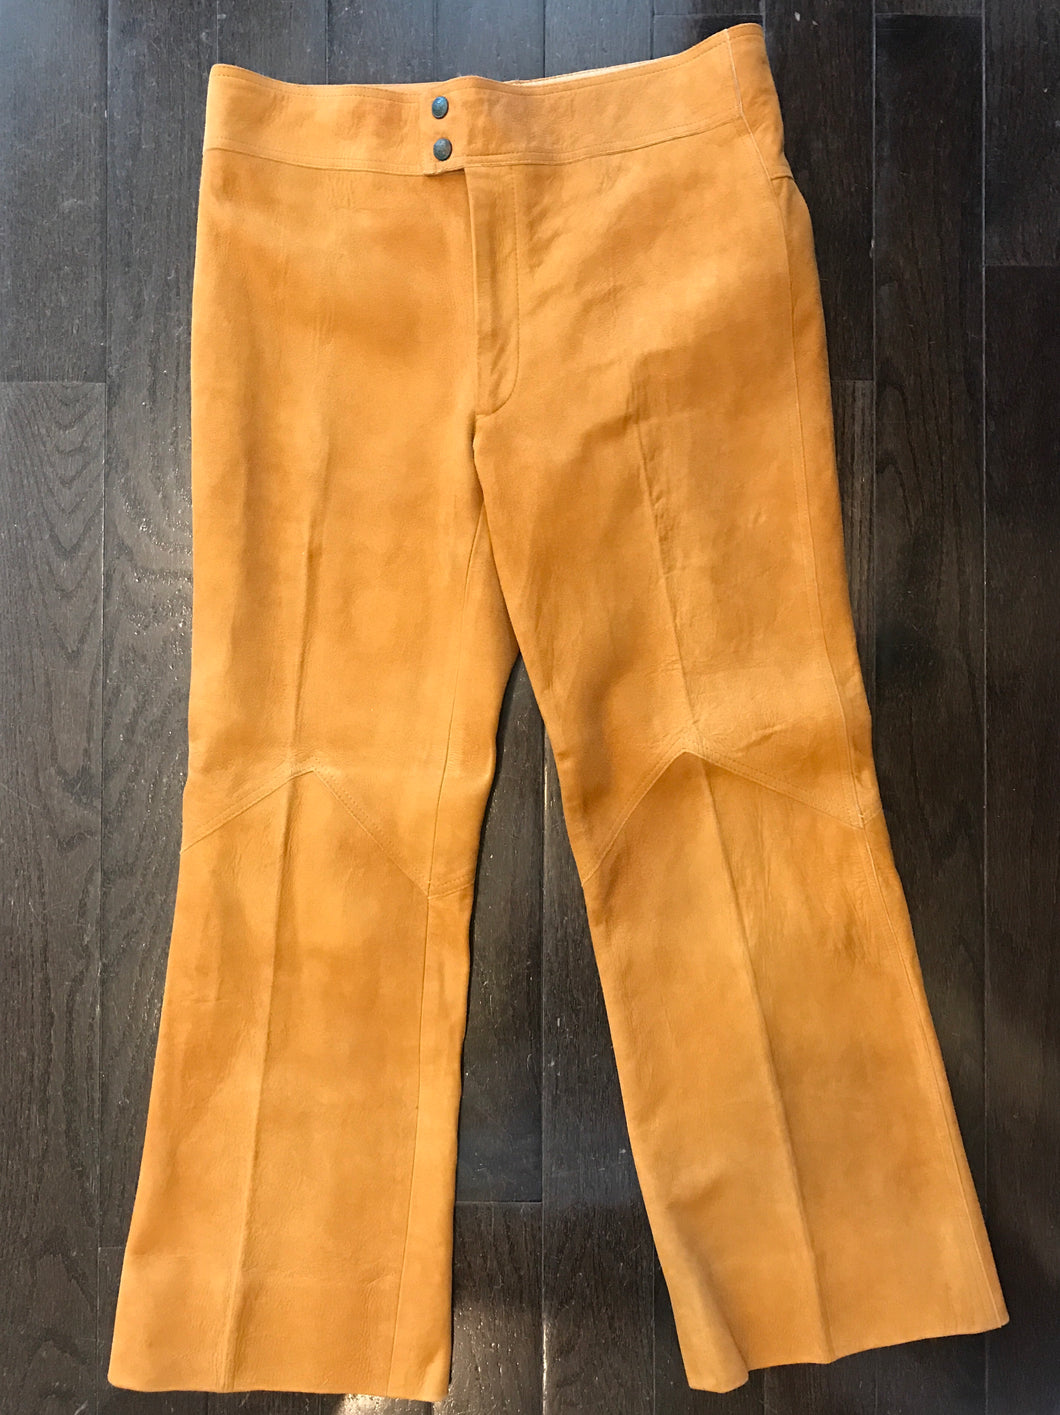 Mens Brown Suede Leather Rocker Pants 34